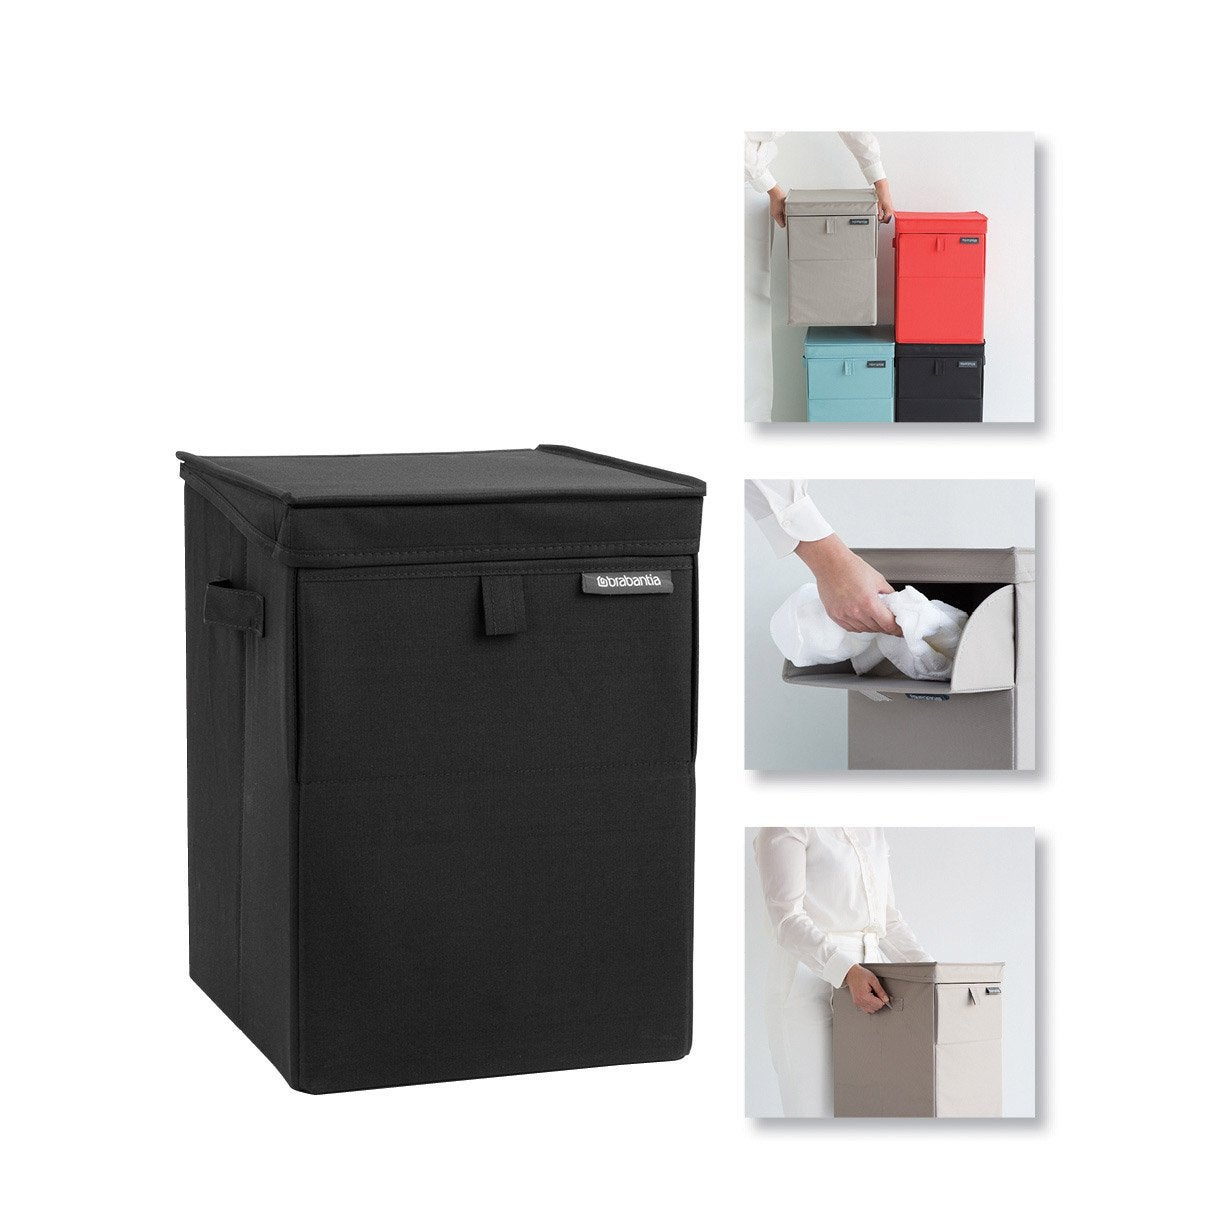 panier linge coffre a linge empilable noir x h. Black Bedroom Furniture Sets. Home Design Ideas